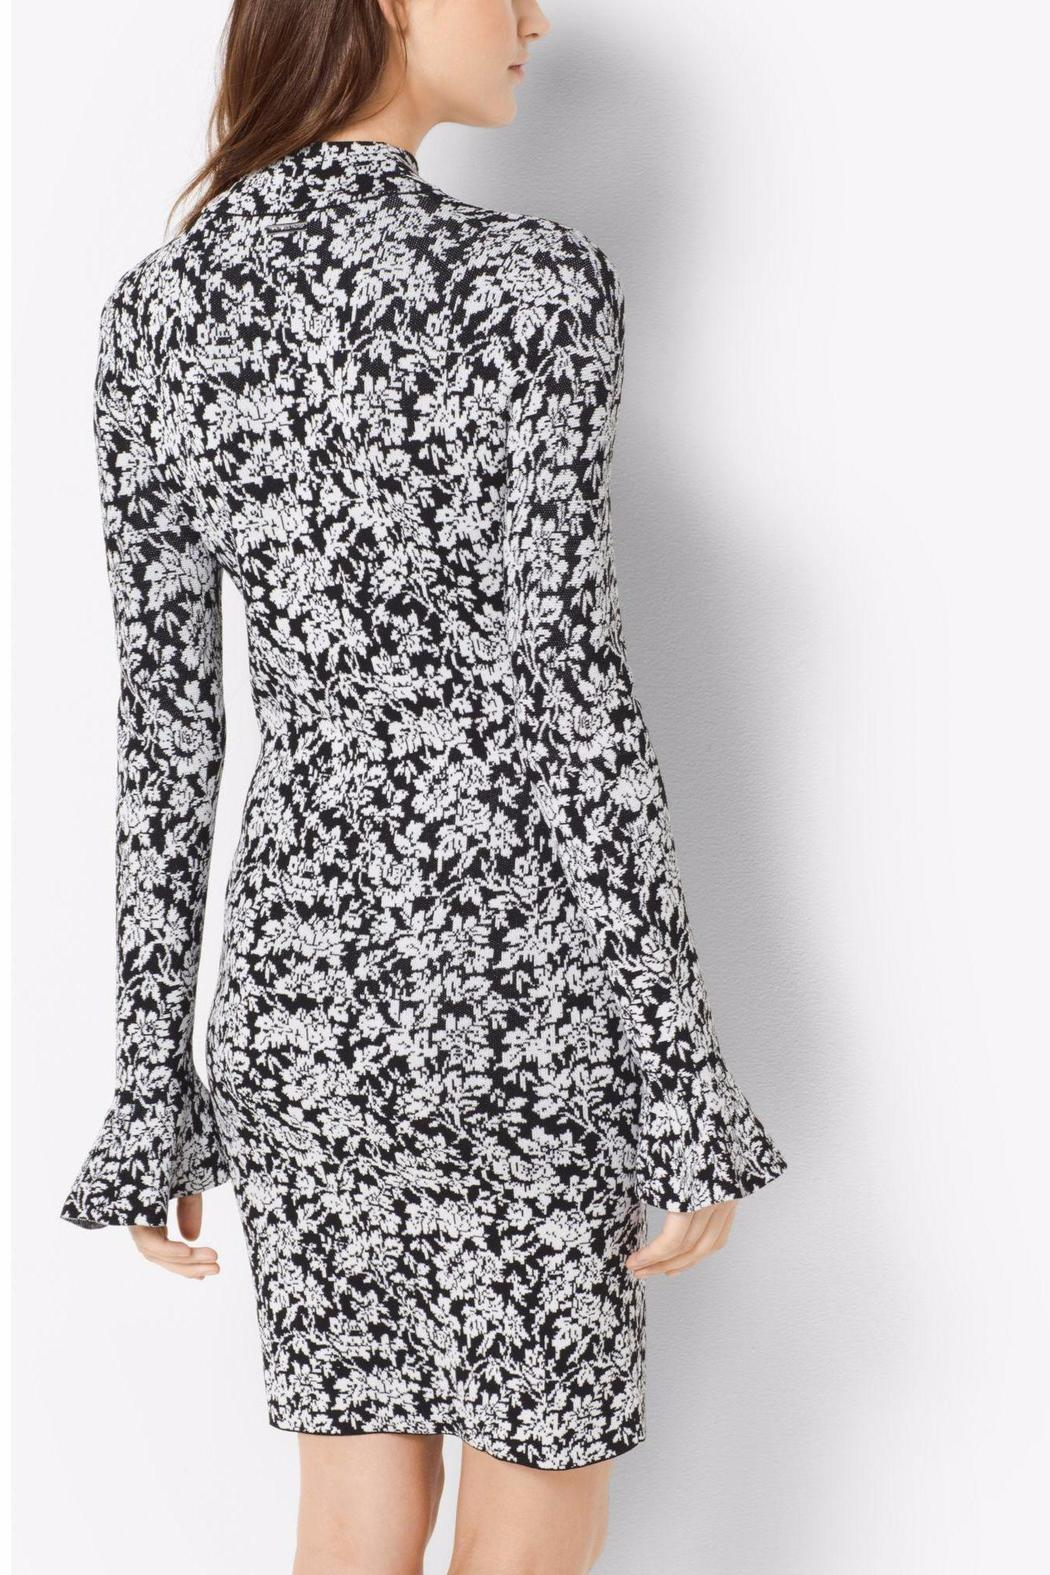 Michael by Michael Kors Floral Bell Sleeve Dress - Front Full Image